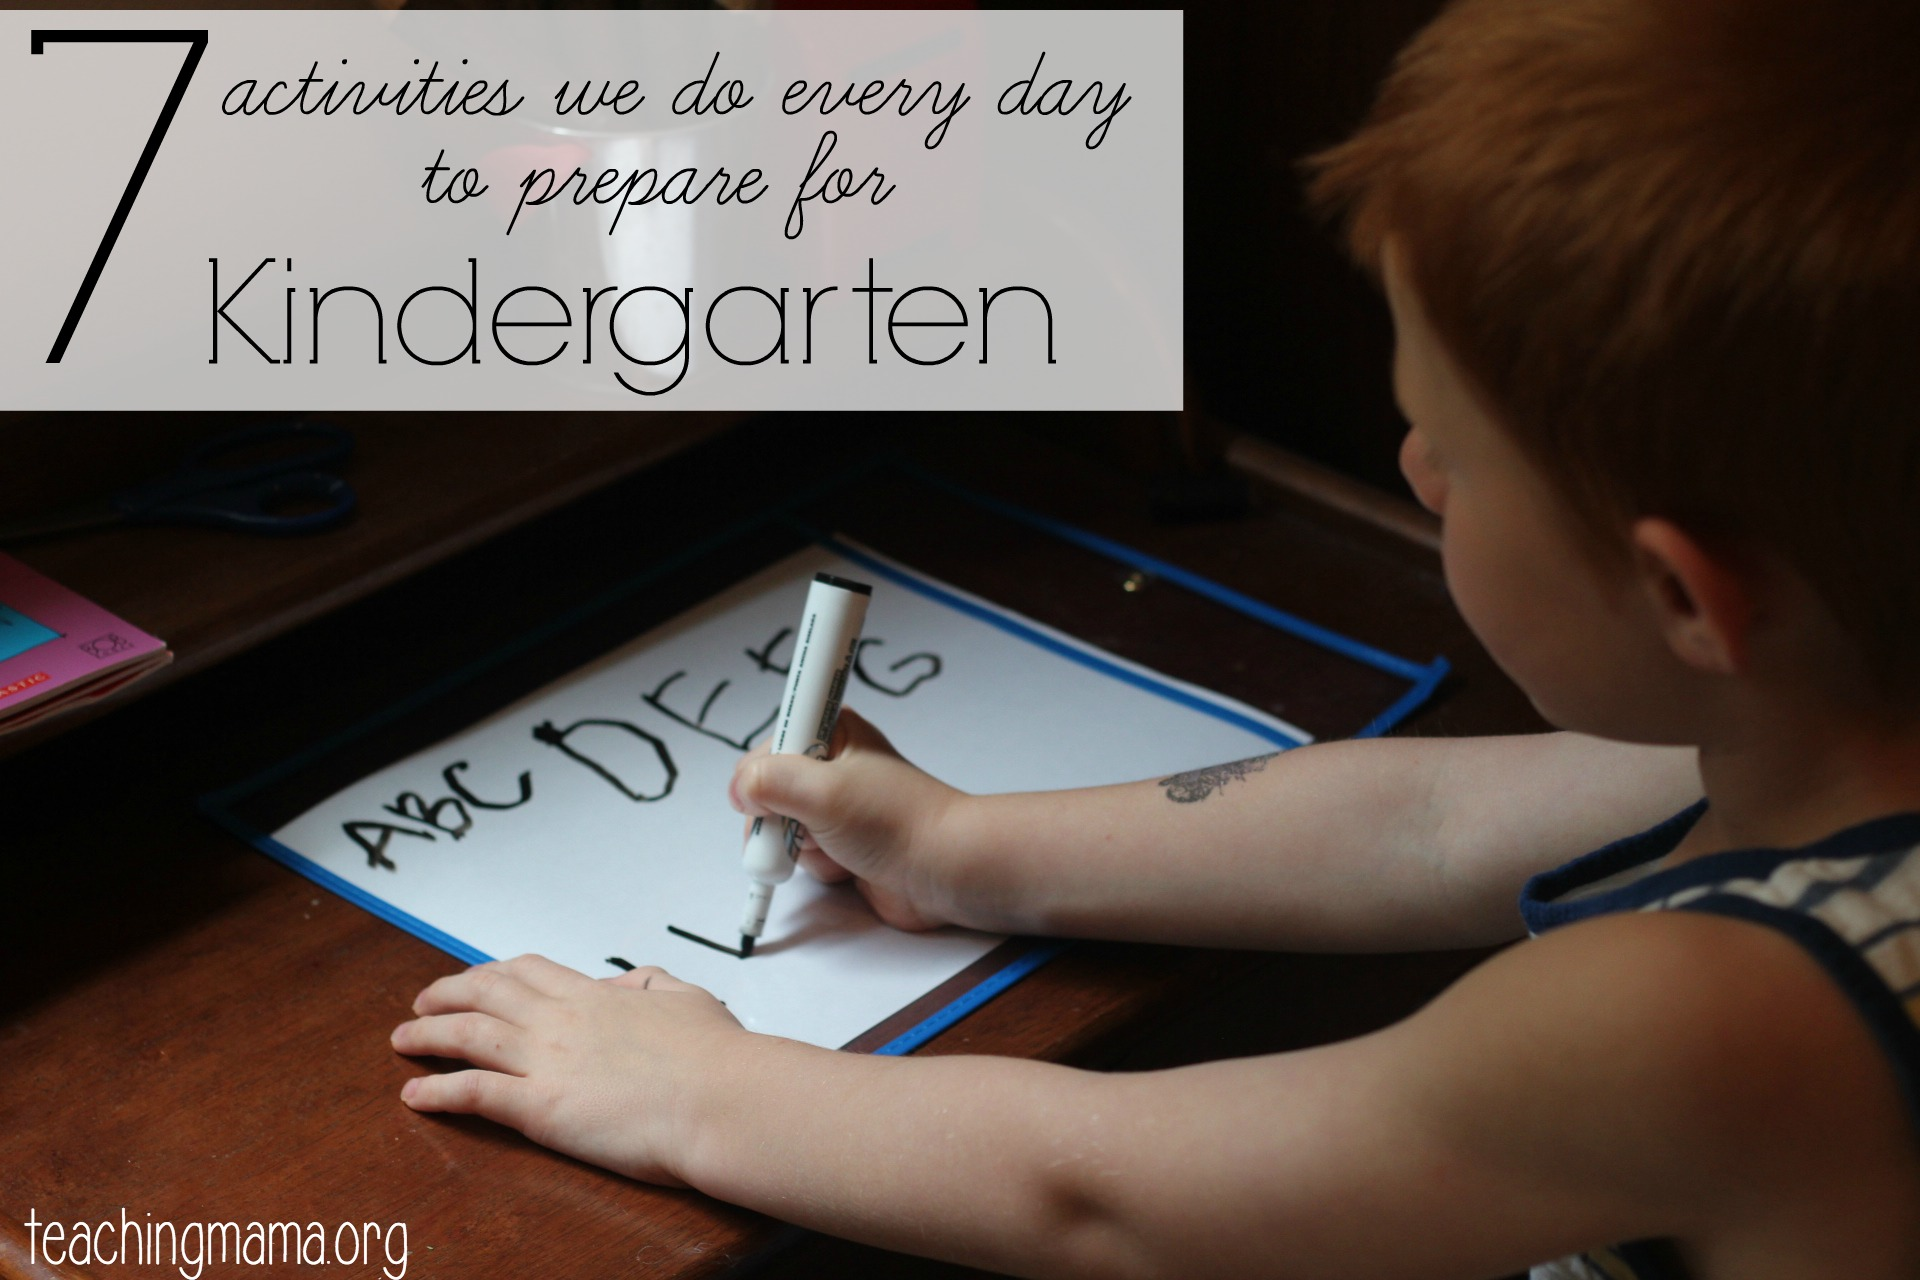 7 Activities We Do to Prepare for Kindergarten